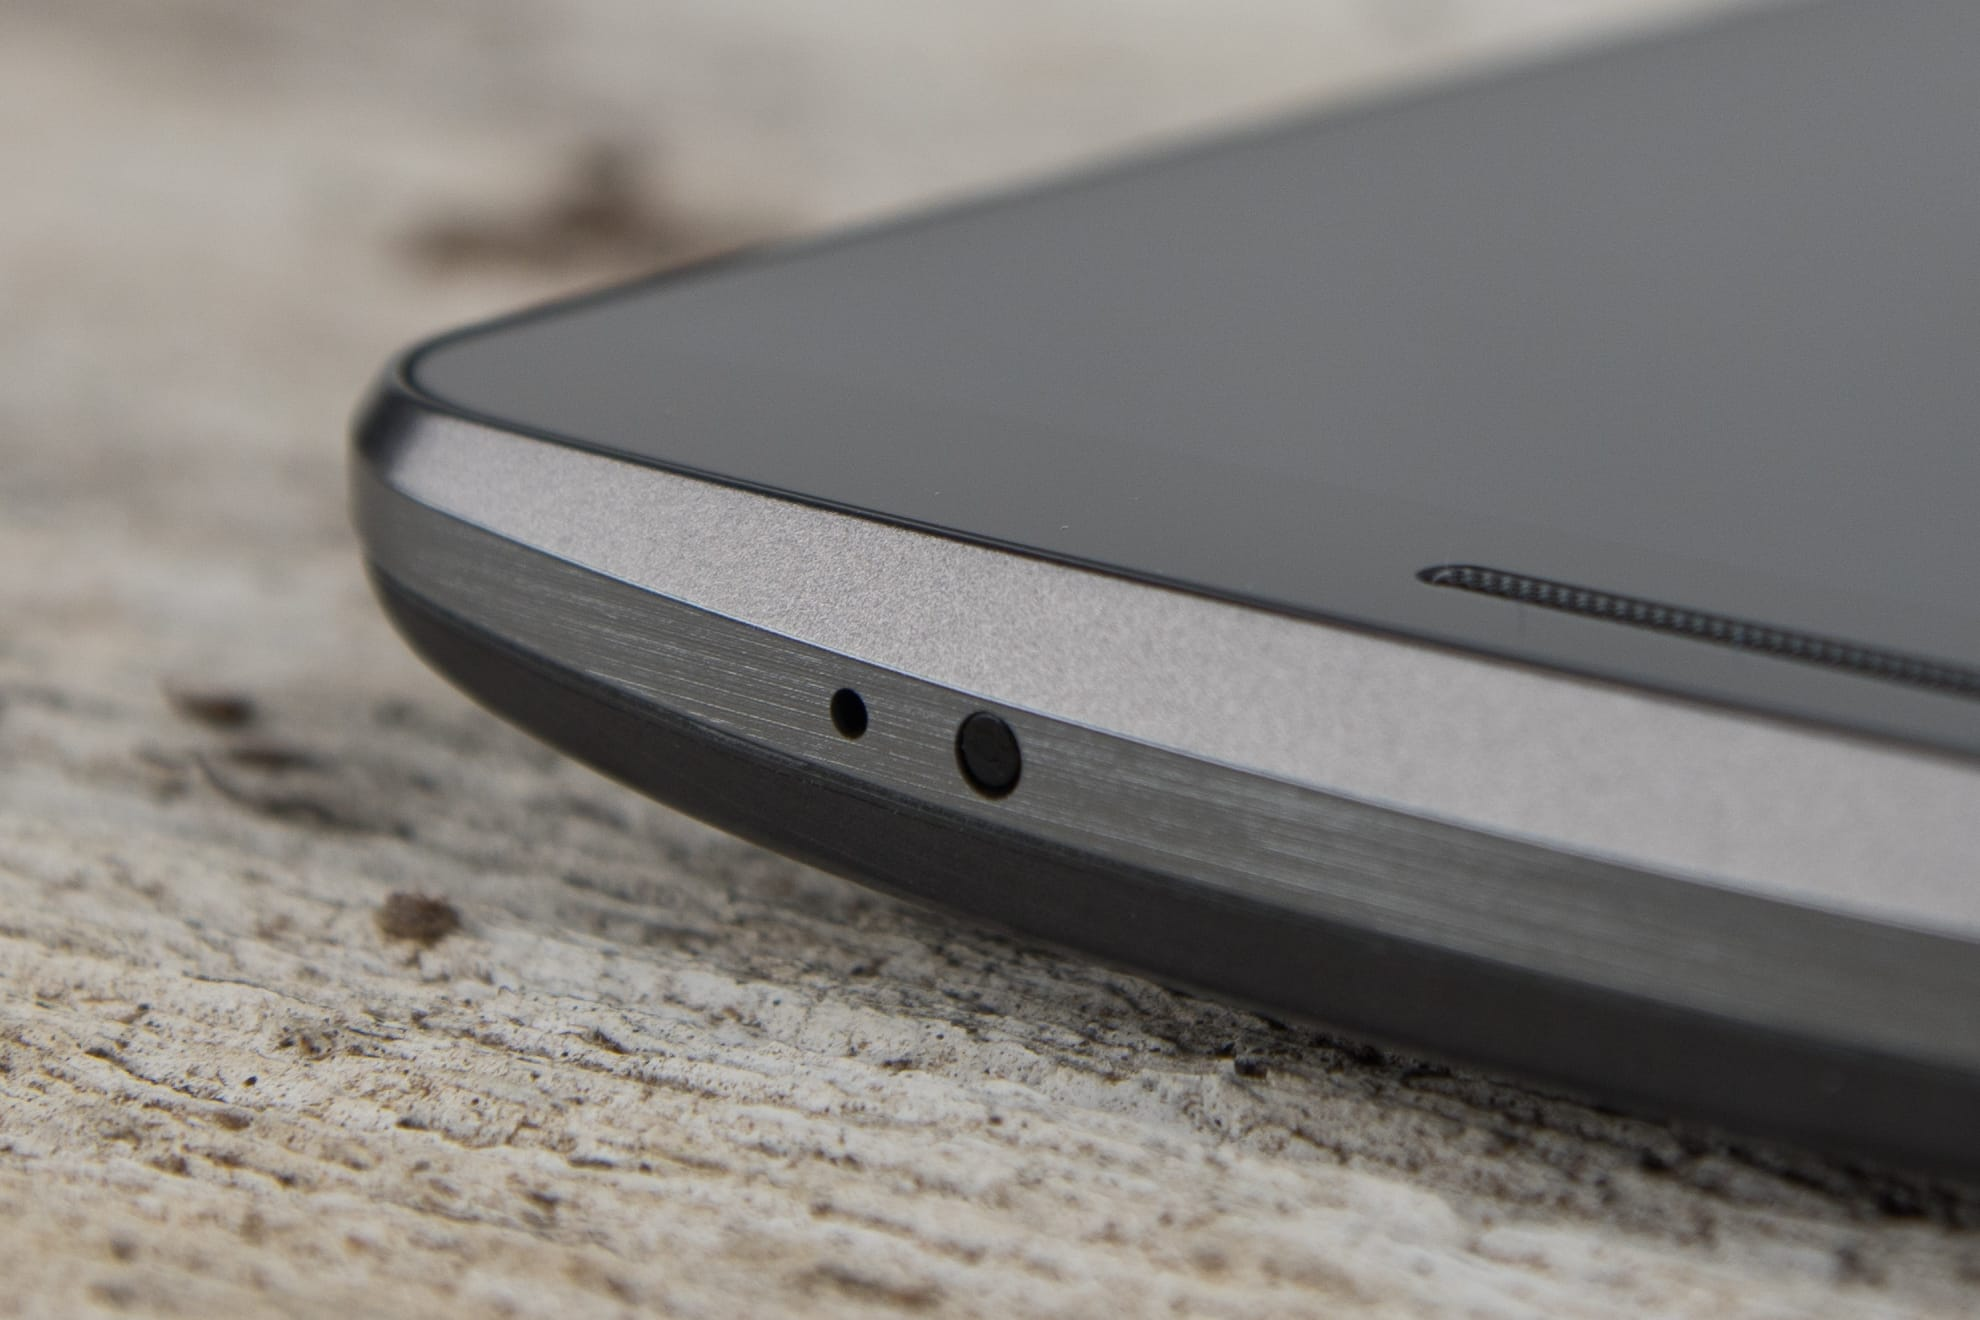 A close-up photo of the LG G3's microphone.